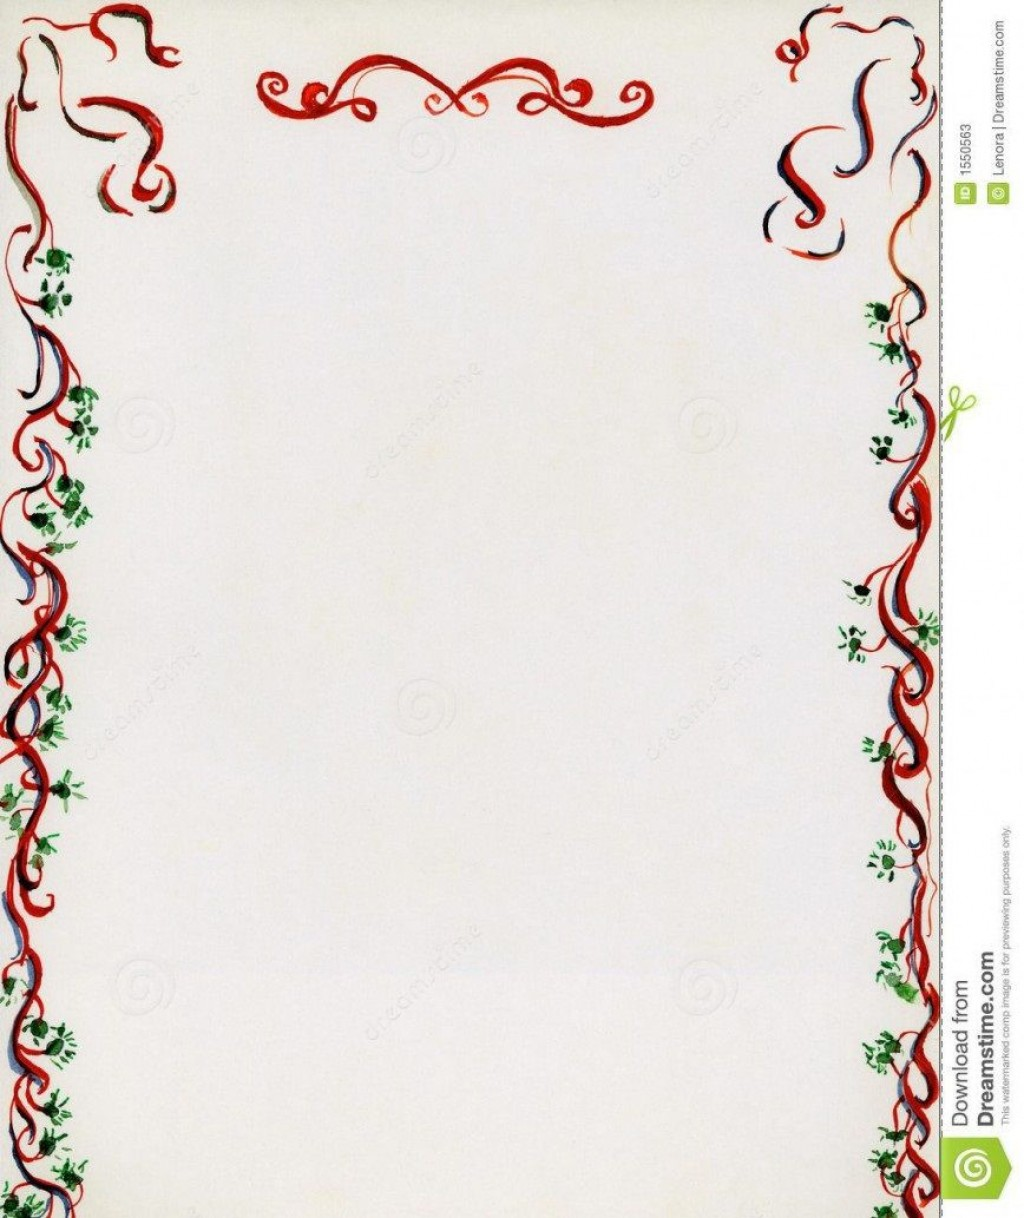 005 Unique Christma Stationery Template Word Free Highest Clarity  Religiou For DownloadableLarge